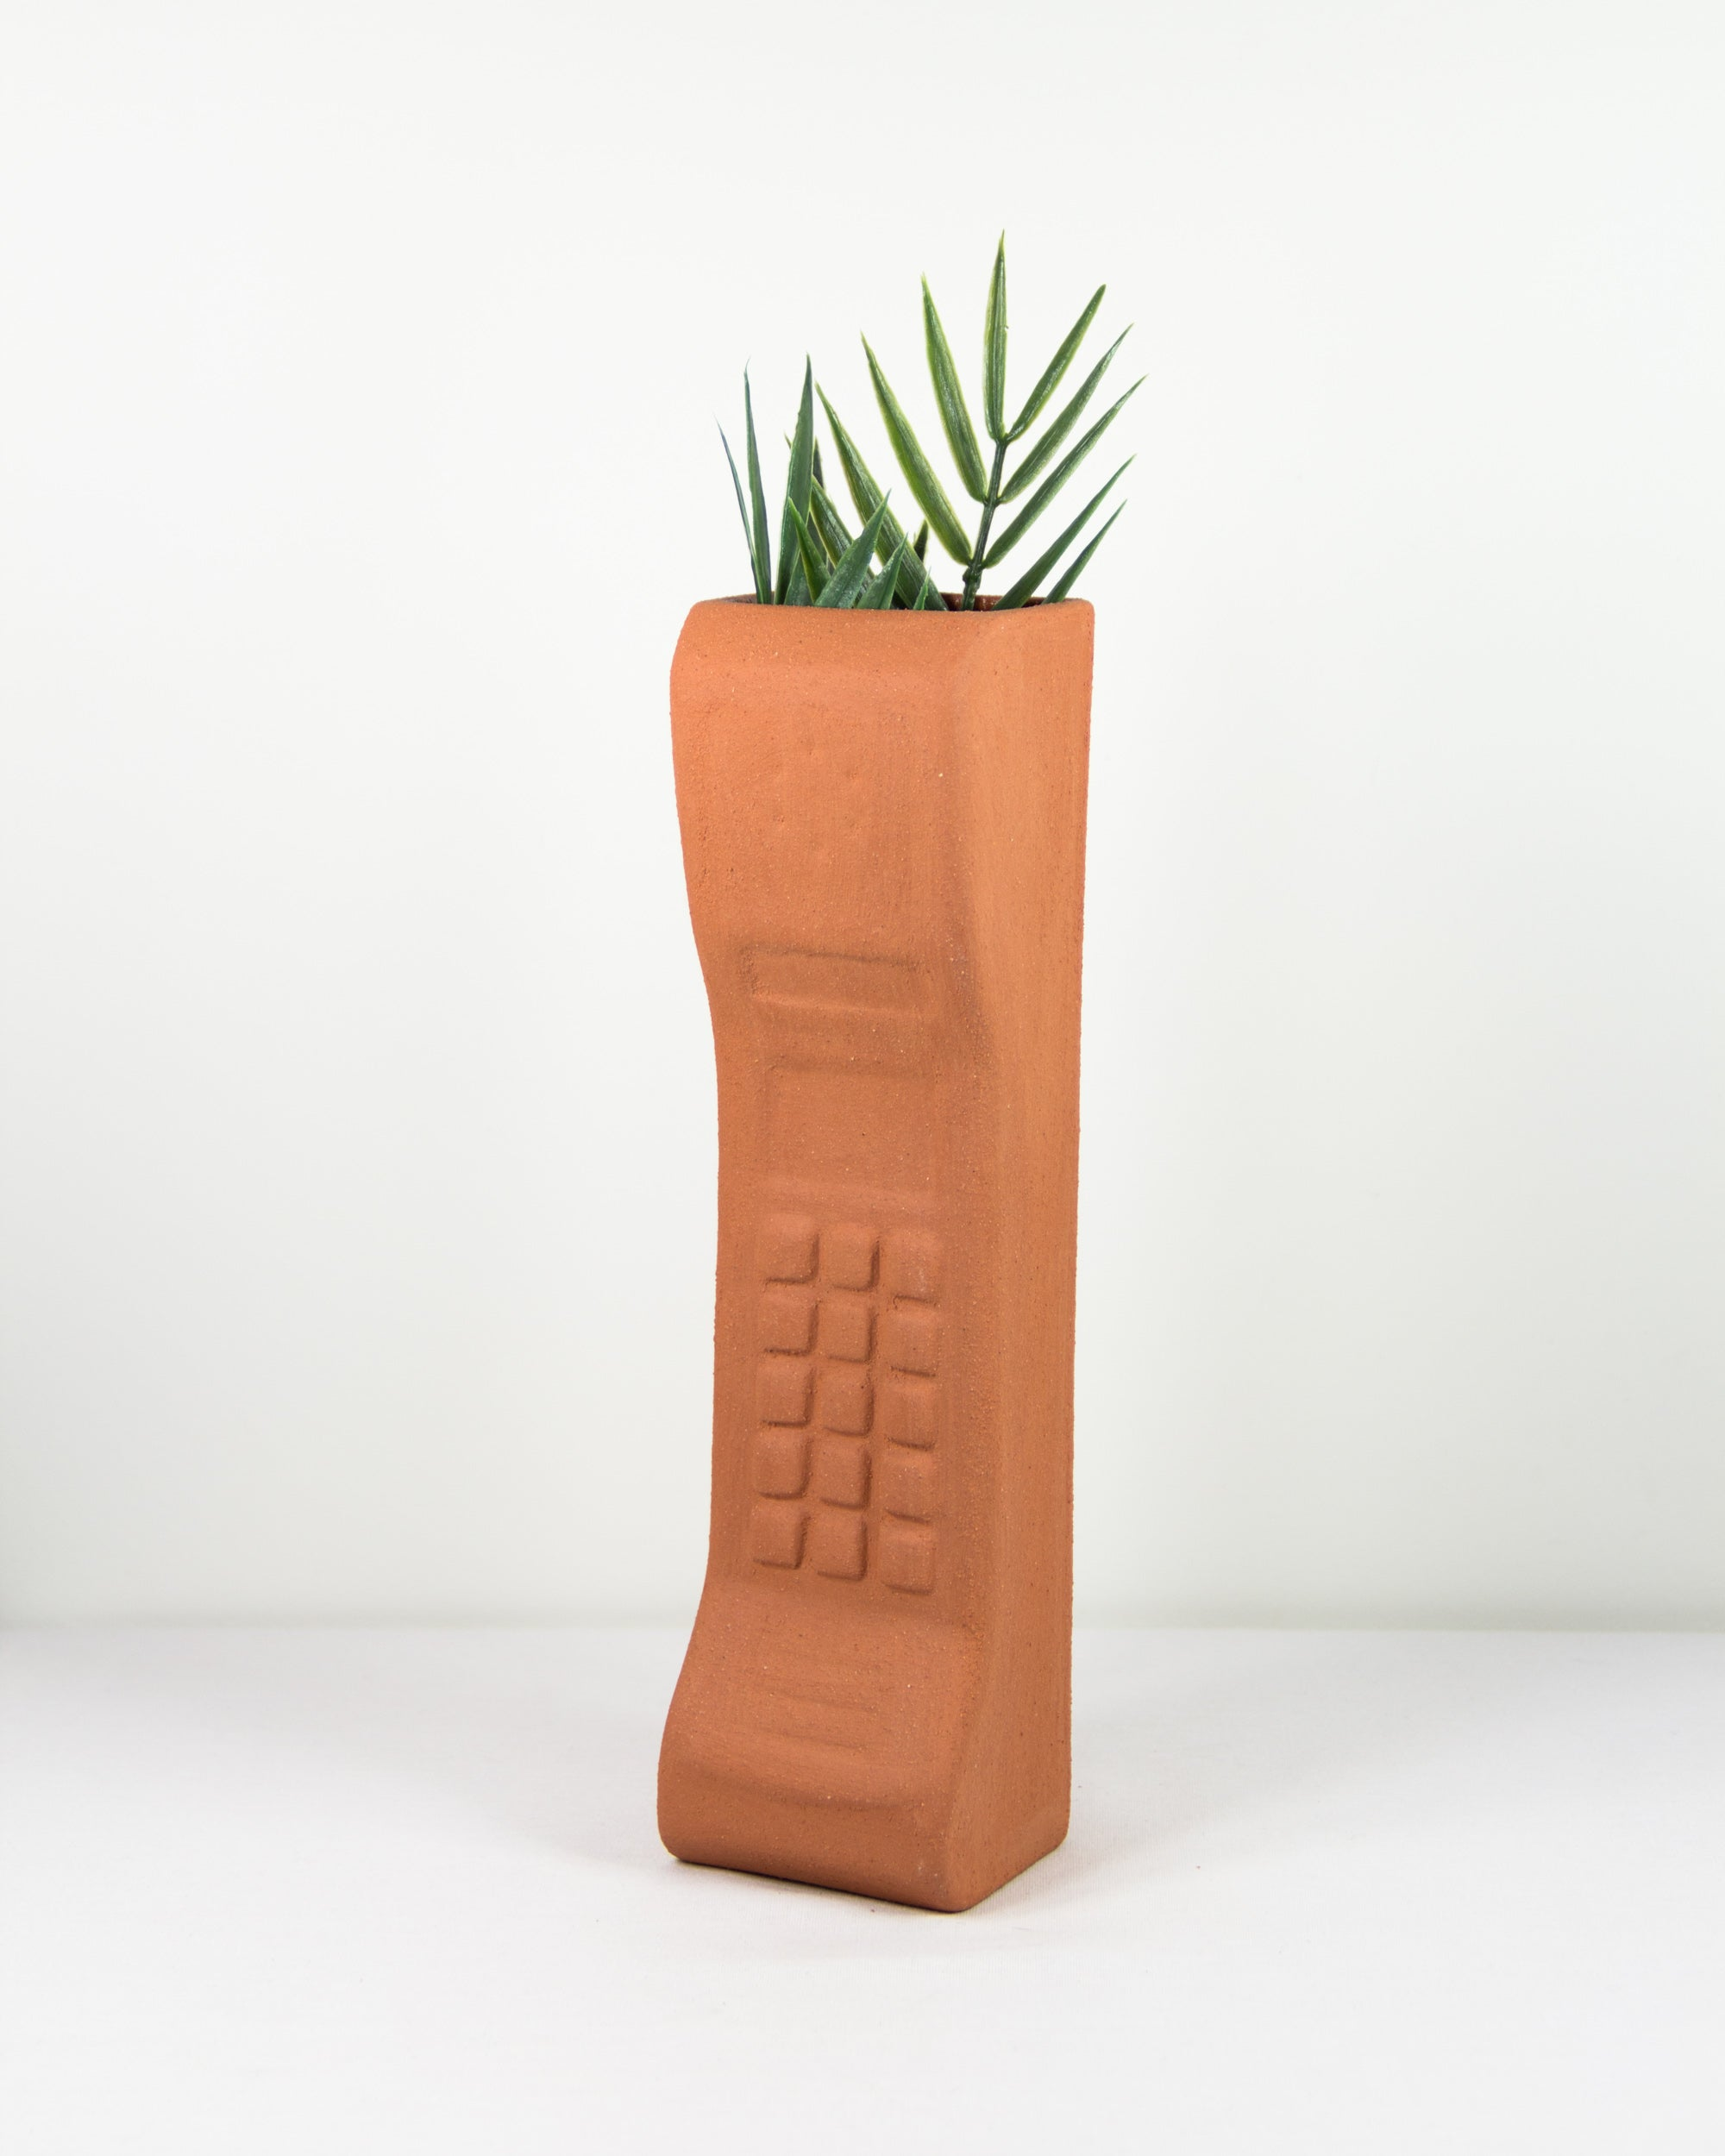 Brick Phone Planter